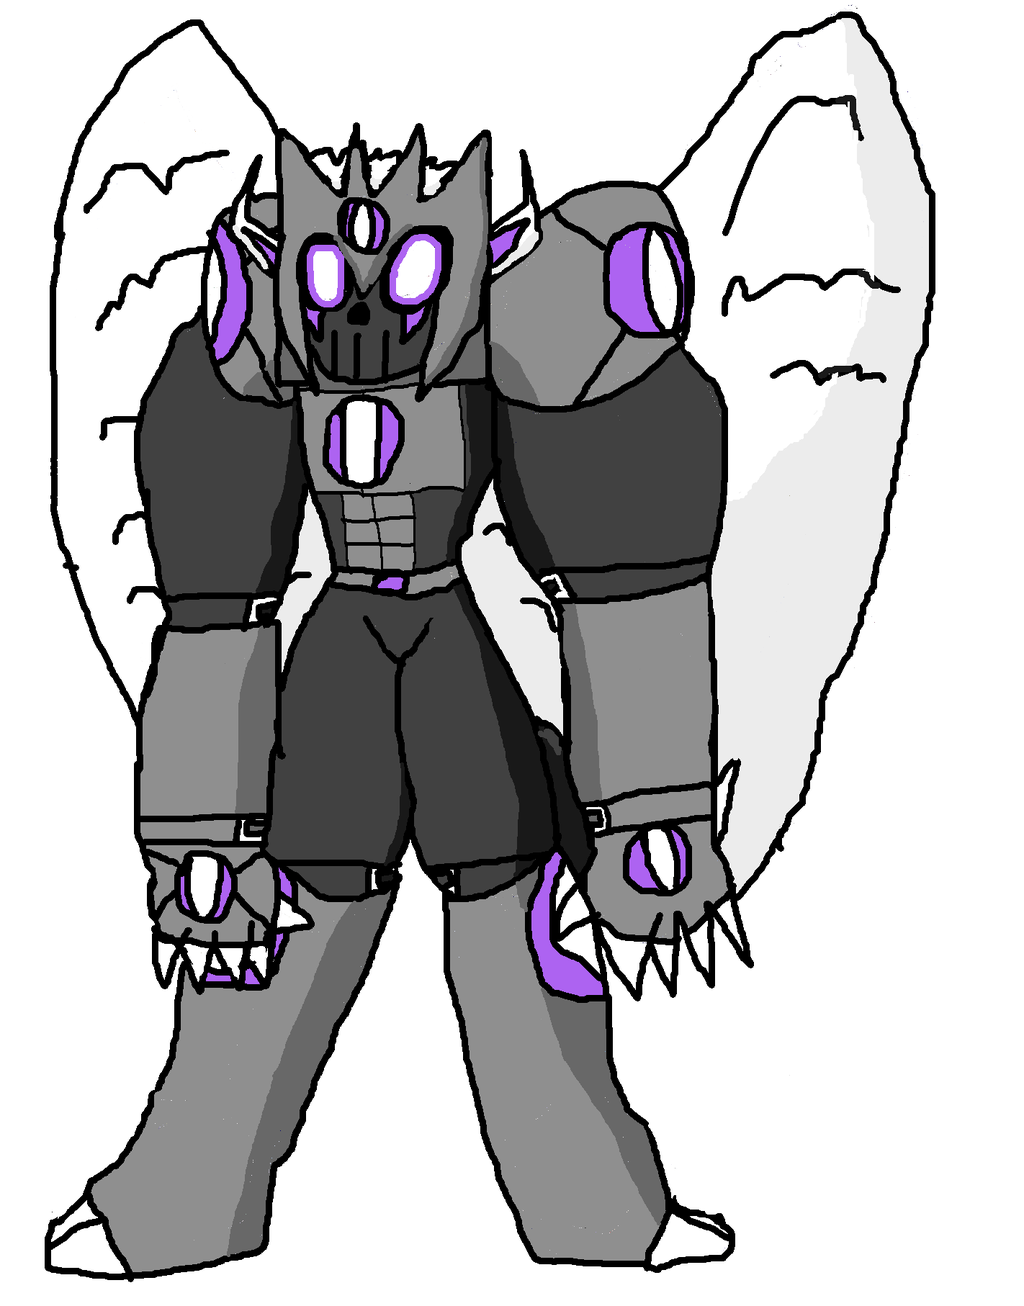 Most recent image: RedeMyotismon - Digimon concept